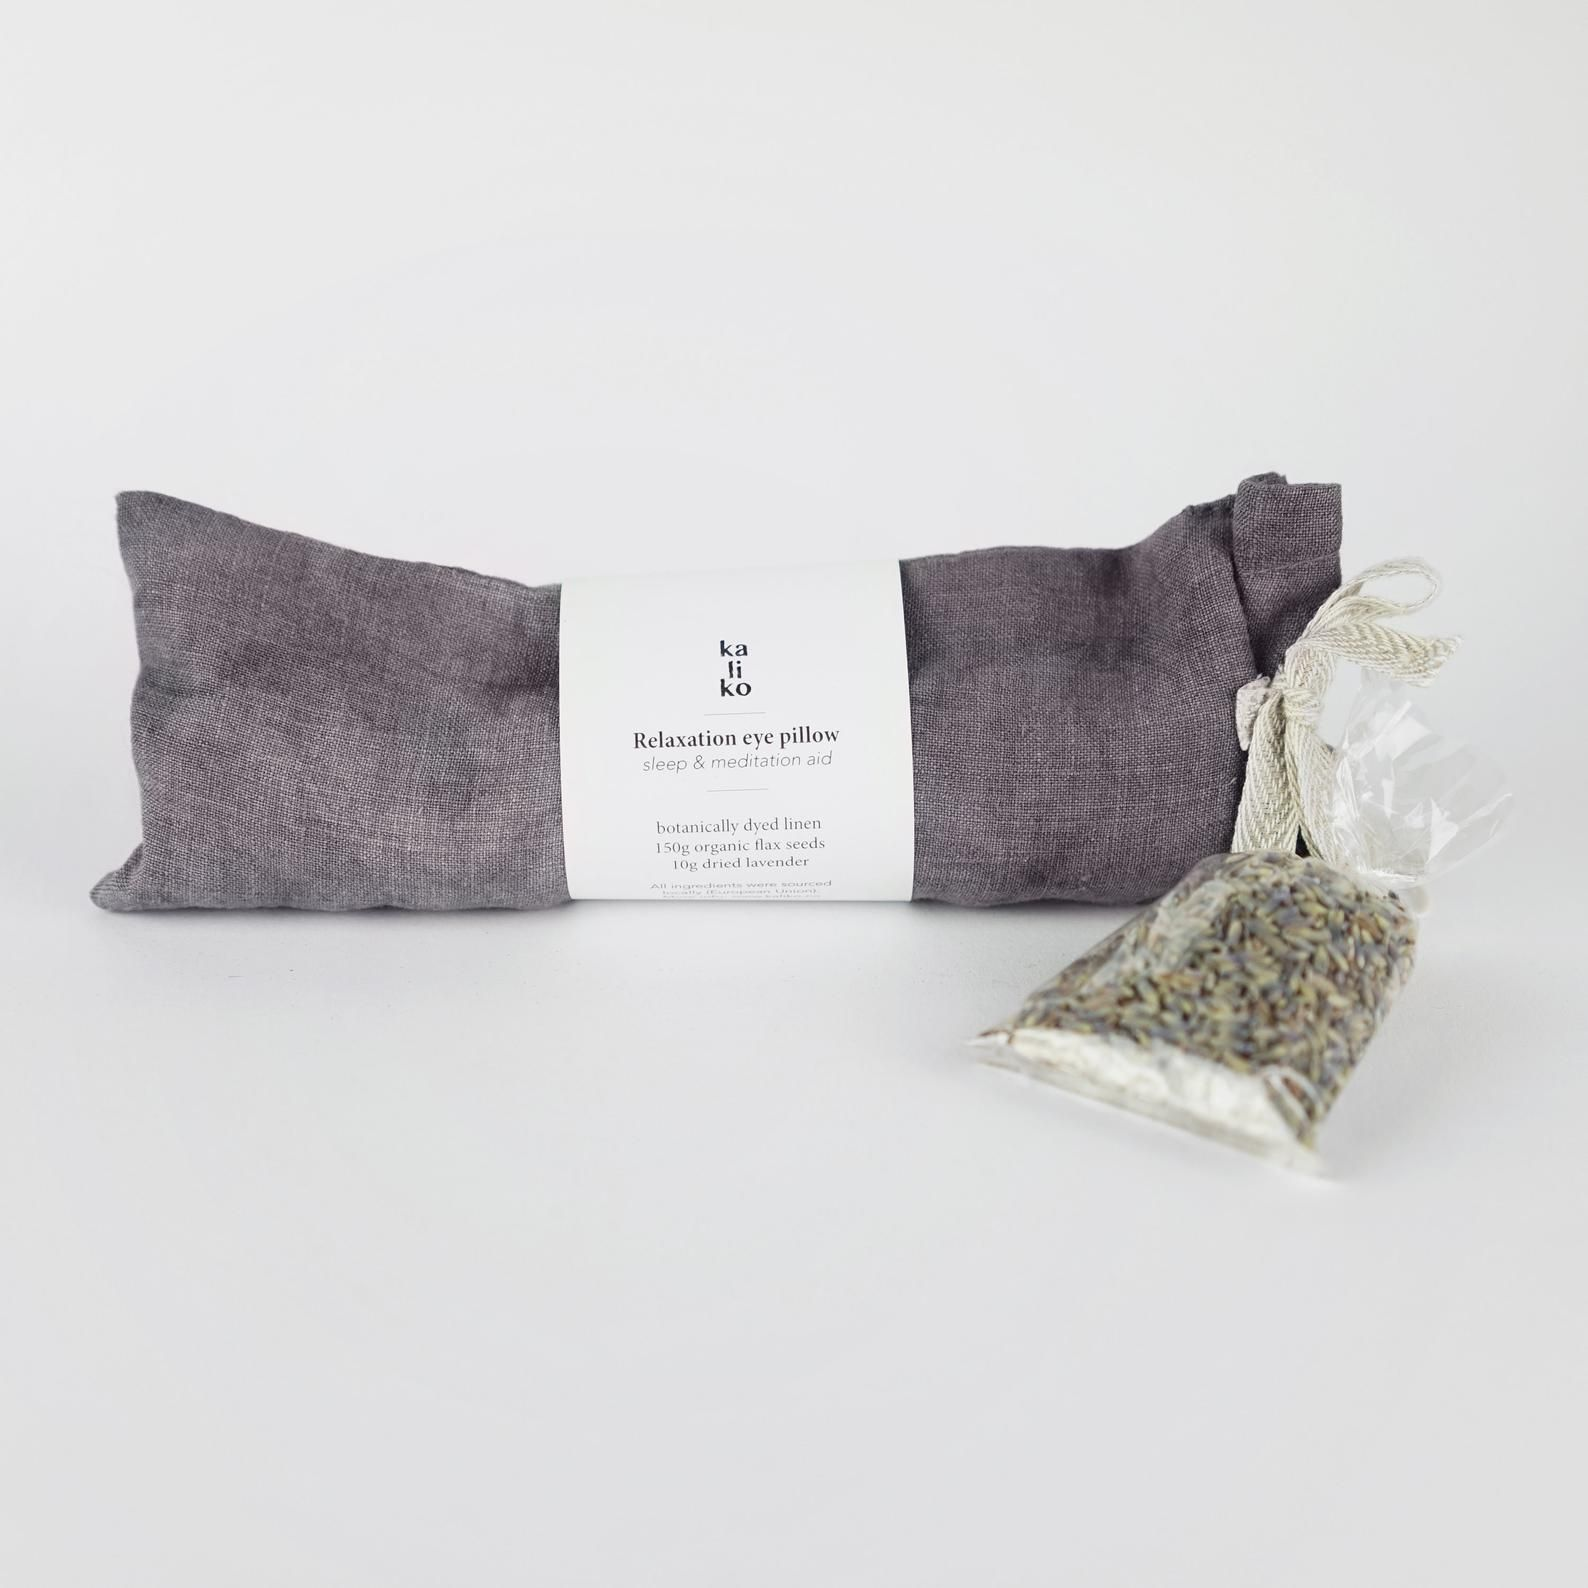 Relaxation Eye Pillow Flax And Lavender Sleep And Meditation Aid 4th Year Anniversary Washable Aromatherapy Linen Bag Botanical Dye Eye Pillows Eye Bags Lavender Scent